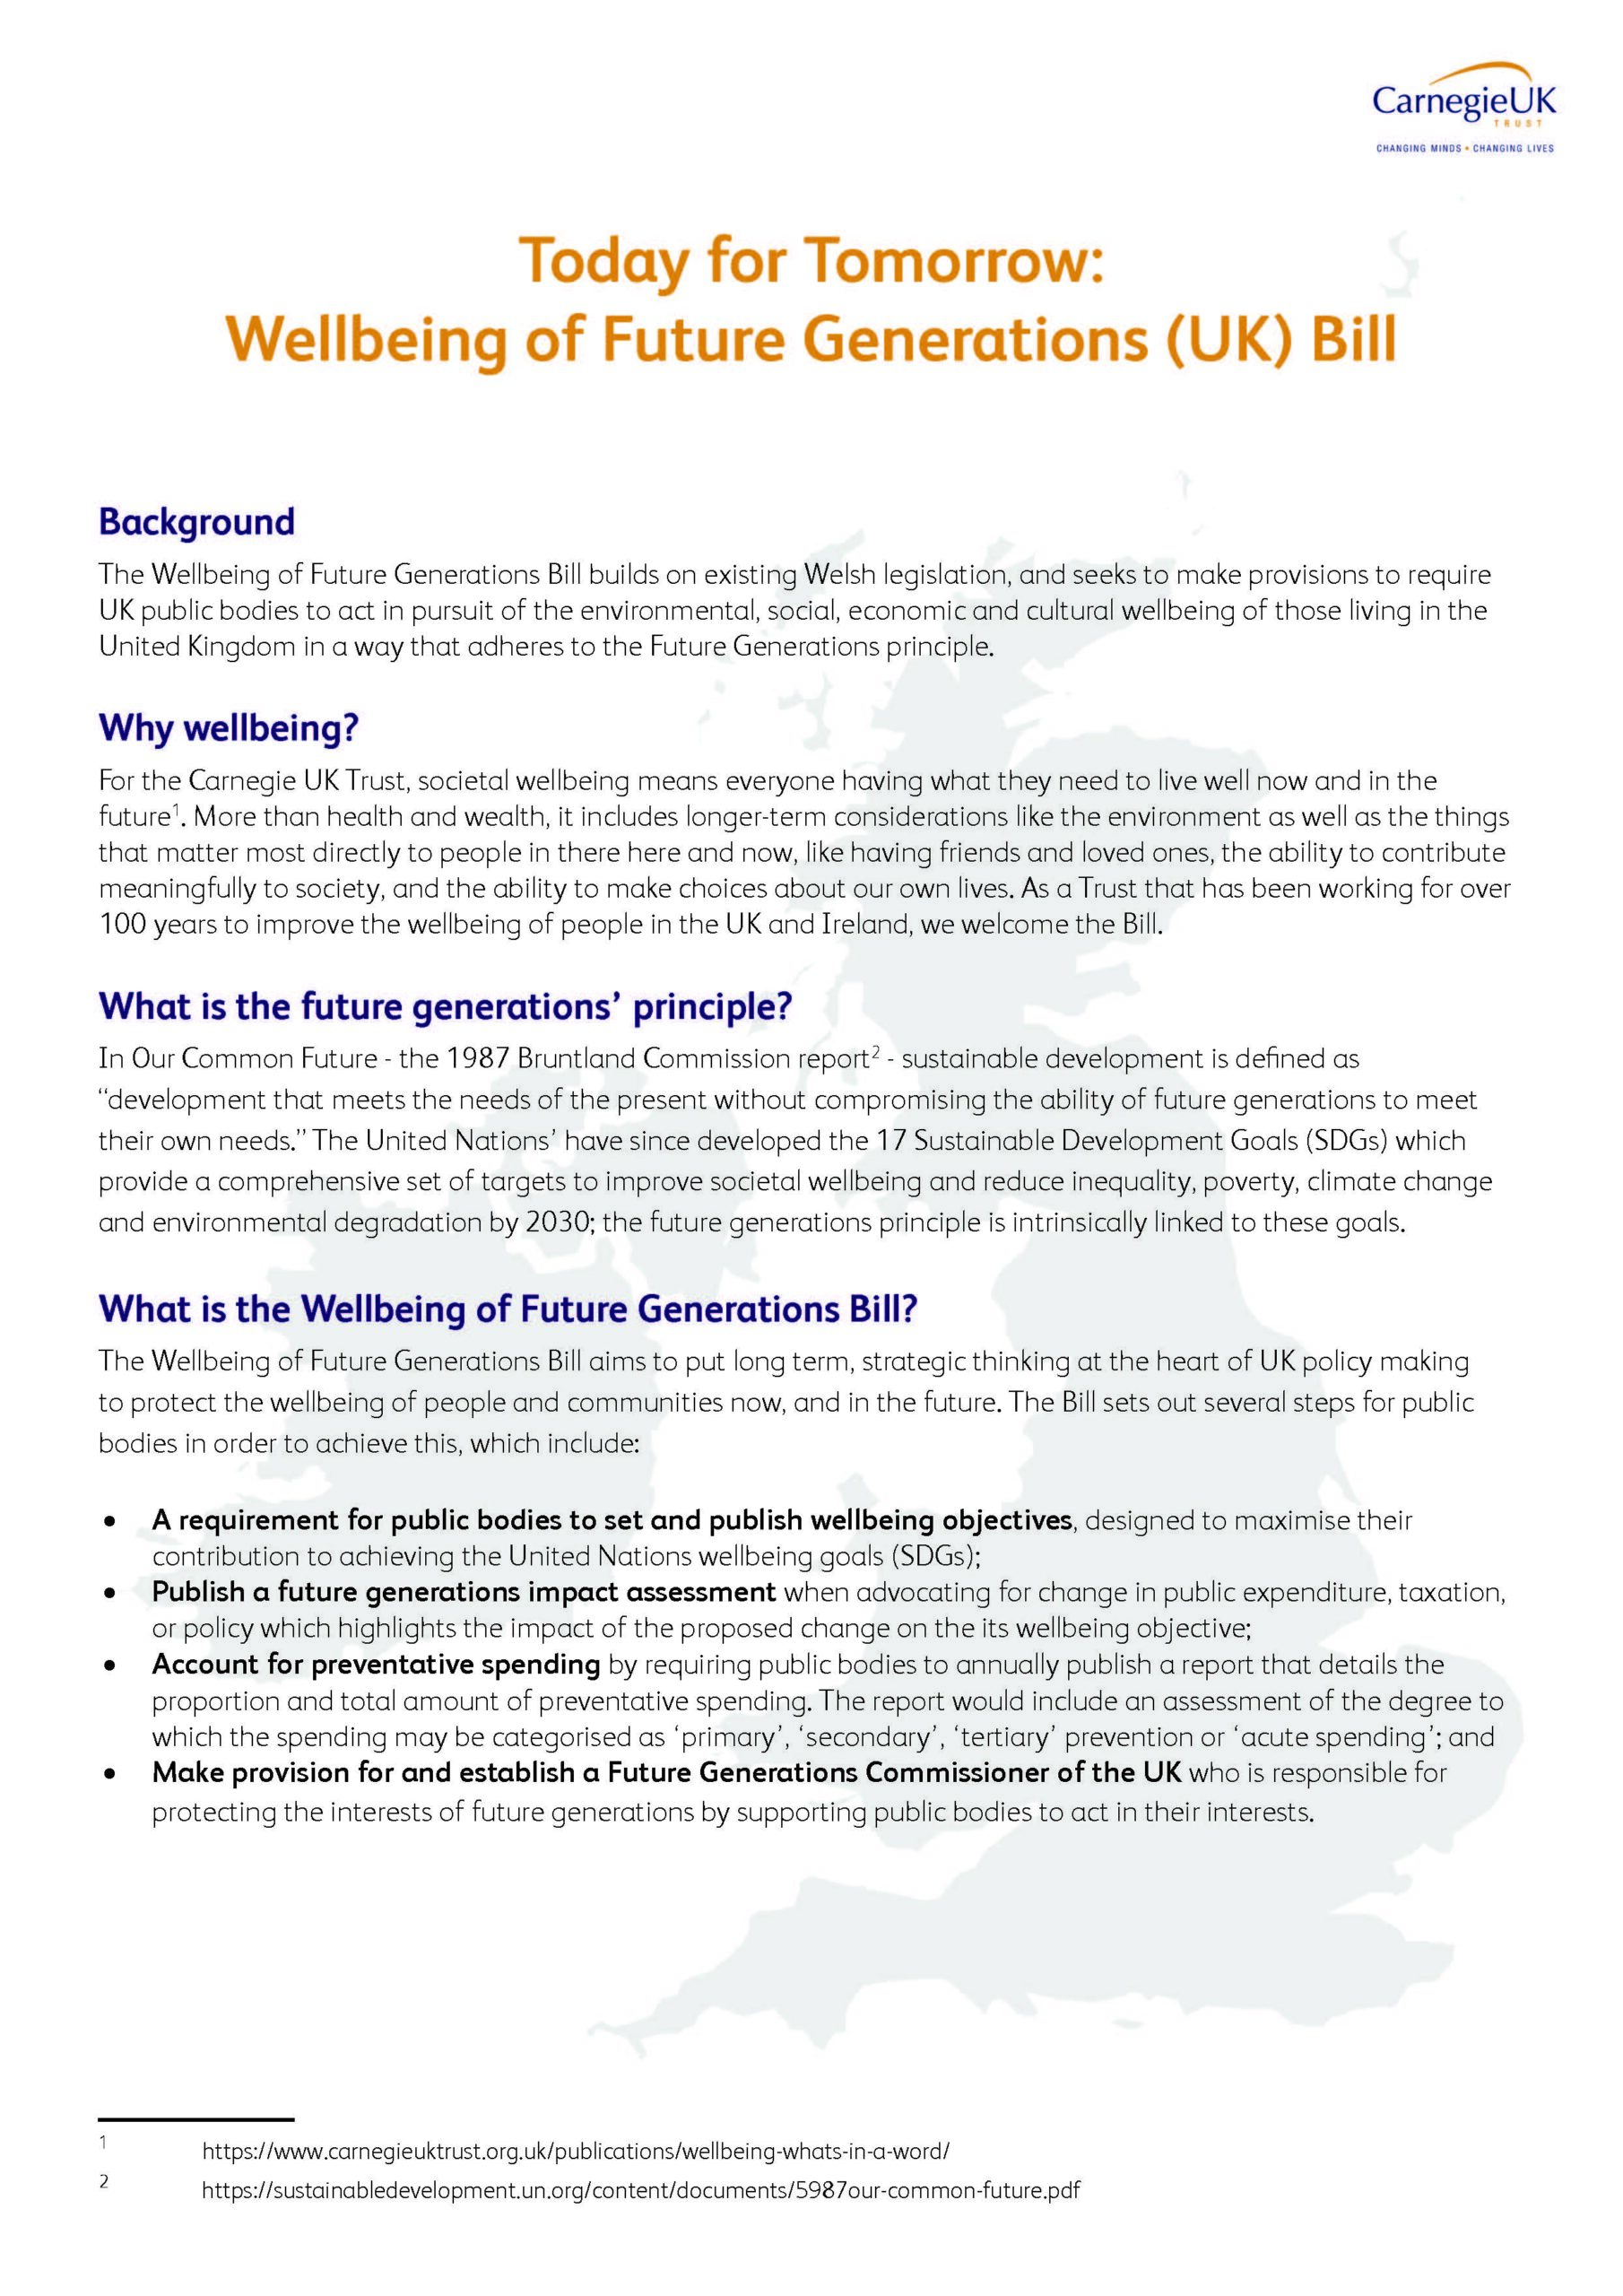 Today for Tomorrow: Wellbeing of Future Generations (UK) Bill